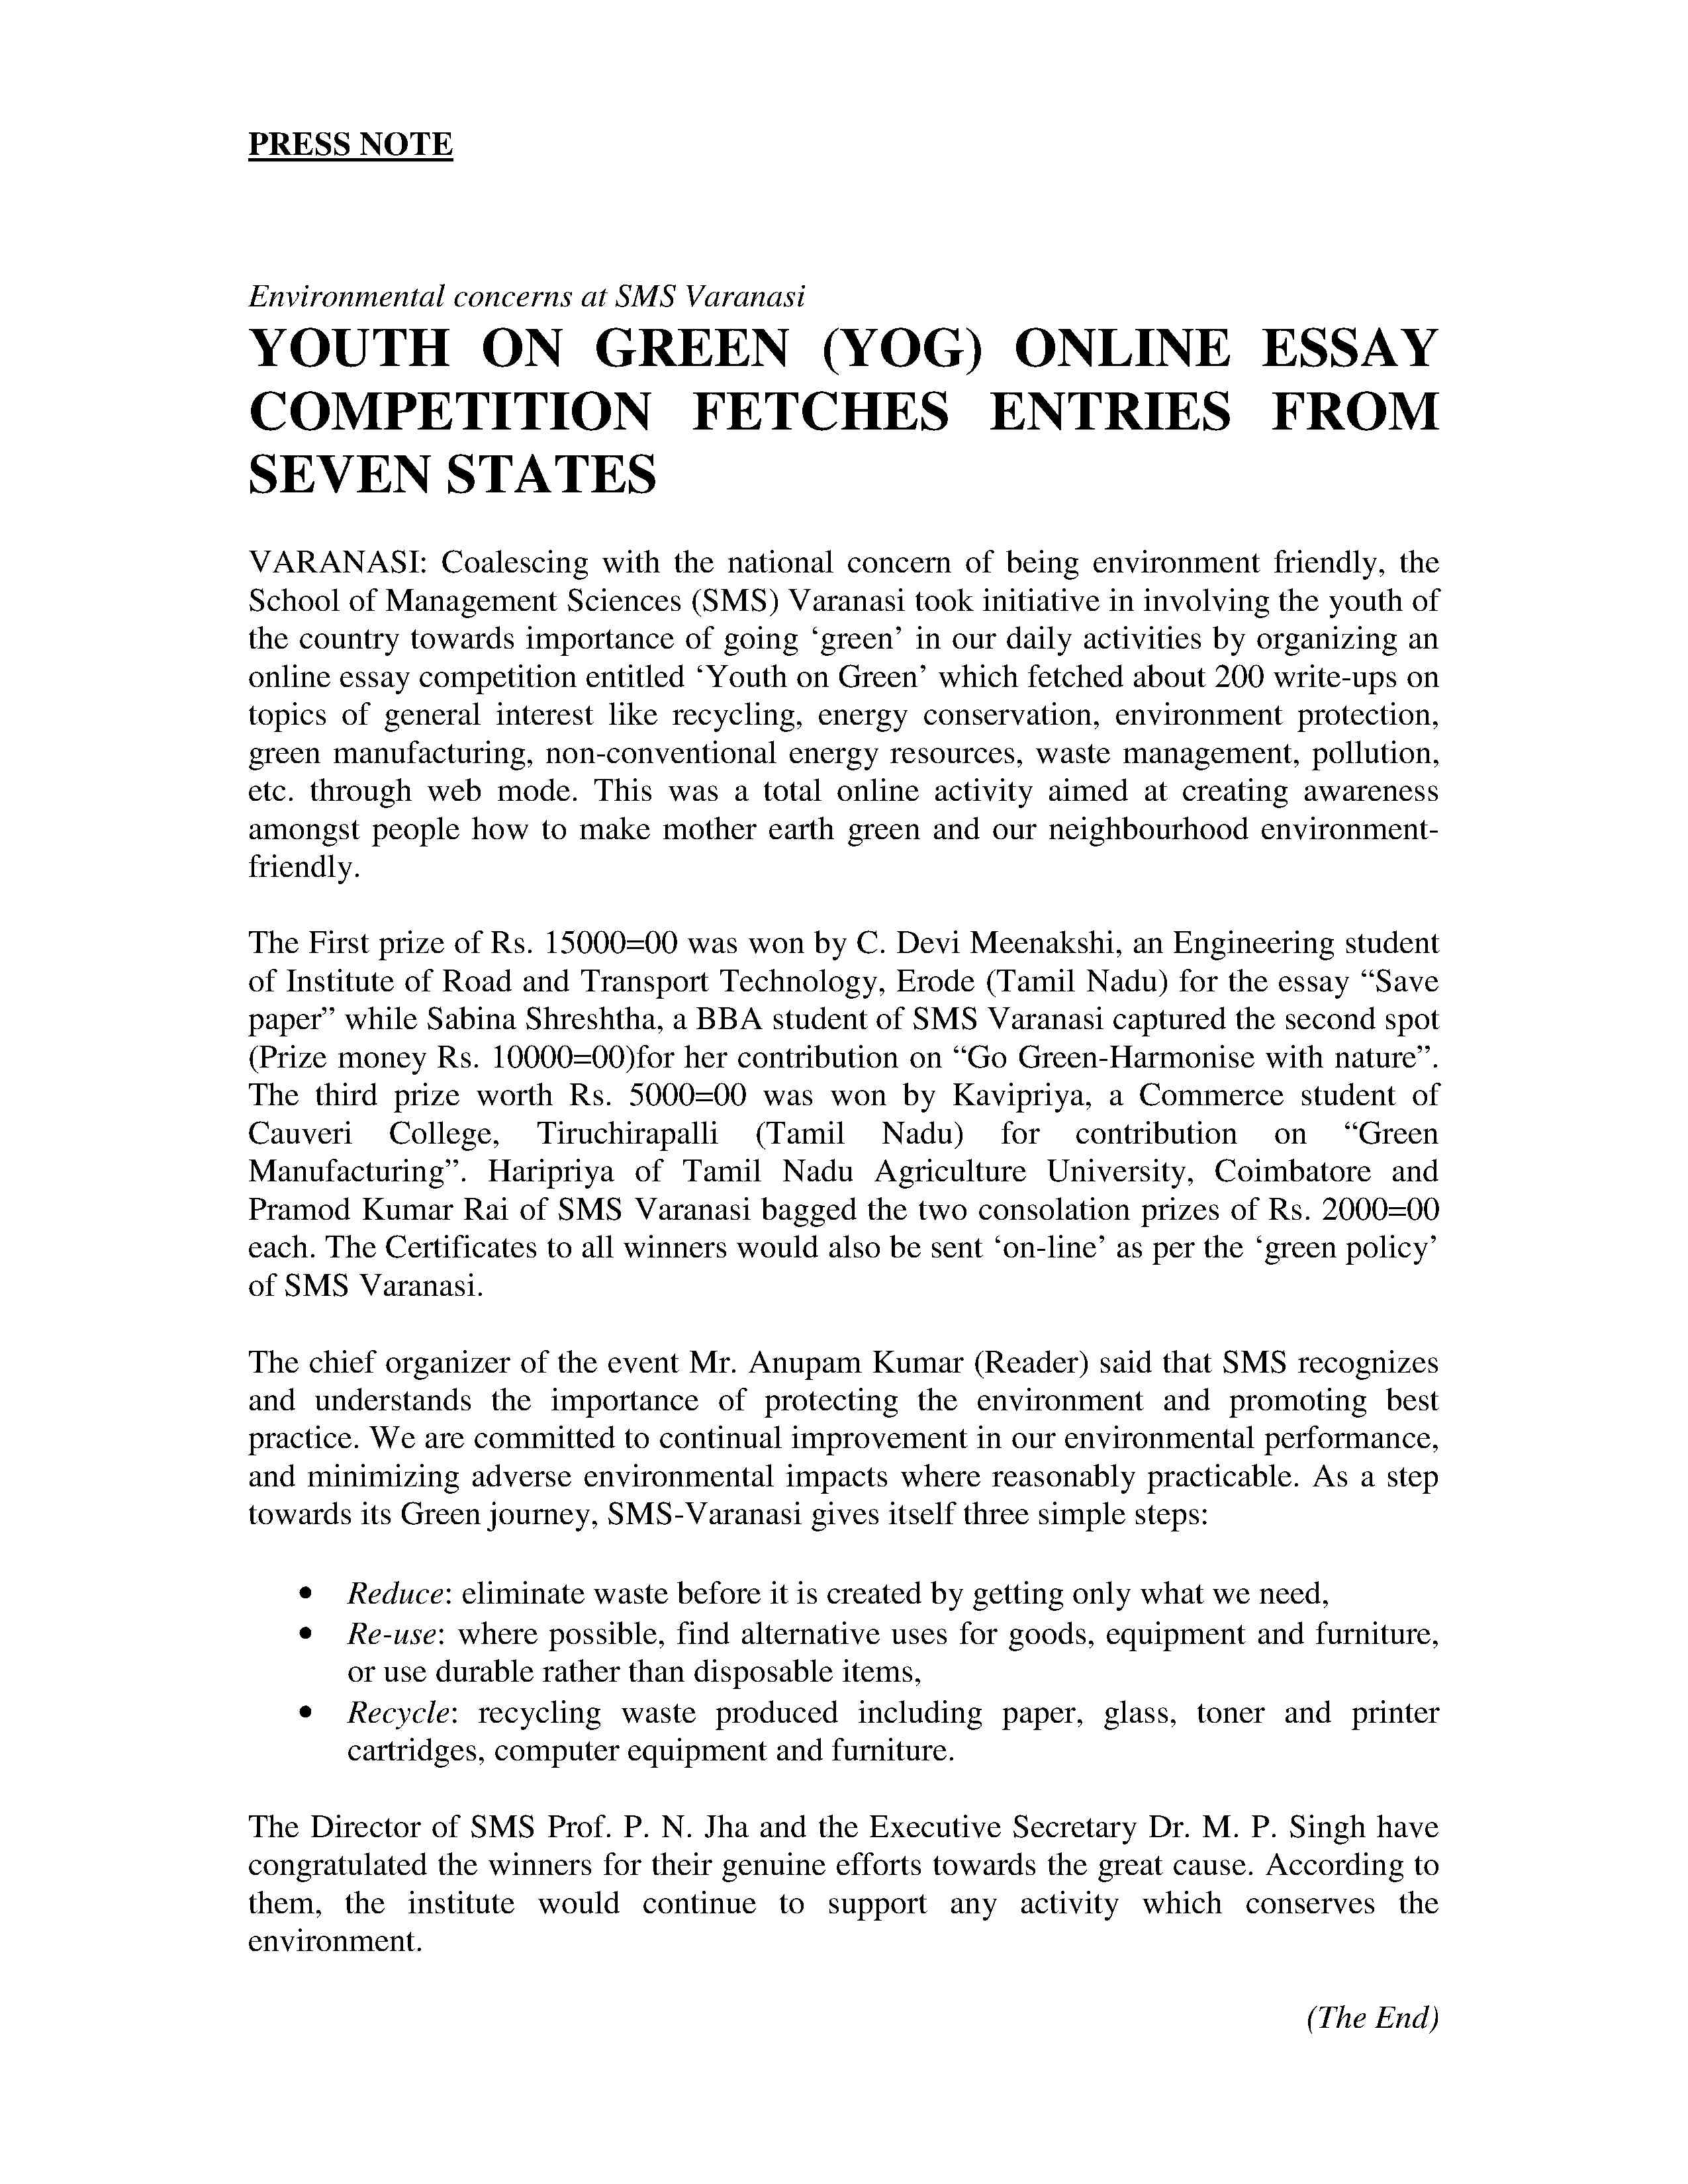 016 Essay About Good Student Example Online Essays Yog Press Report1 Staggering A Responsibilities Of In Urdu Write An What Are The Quality Characteristics Full